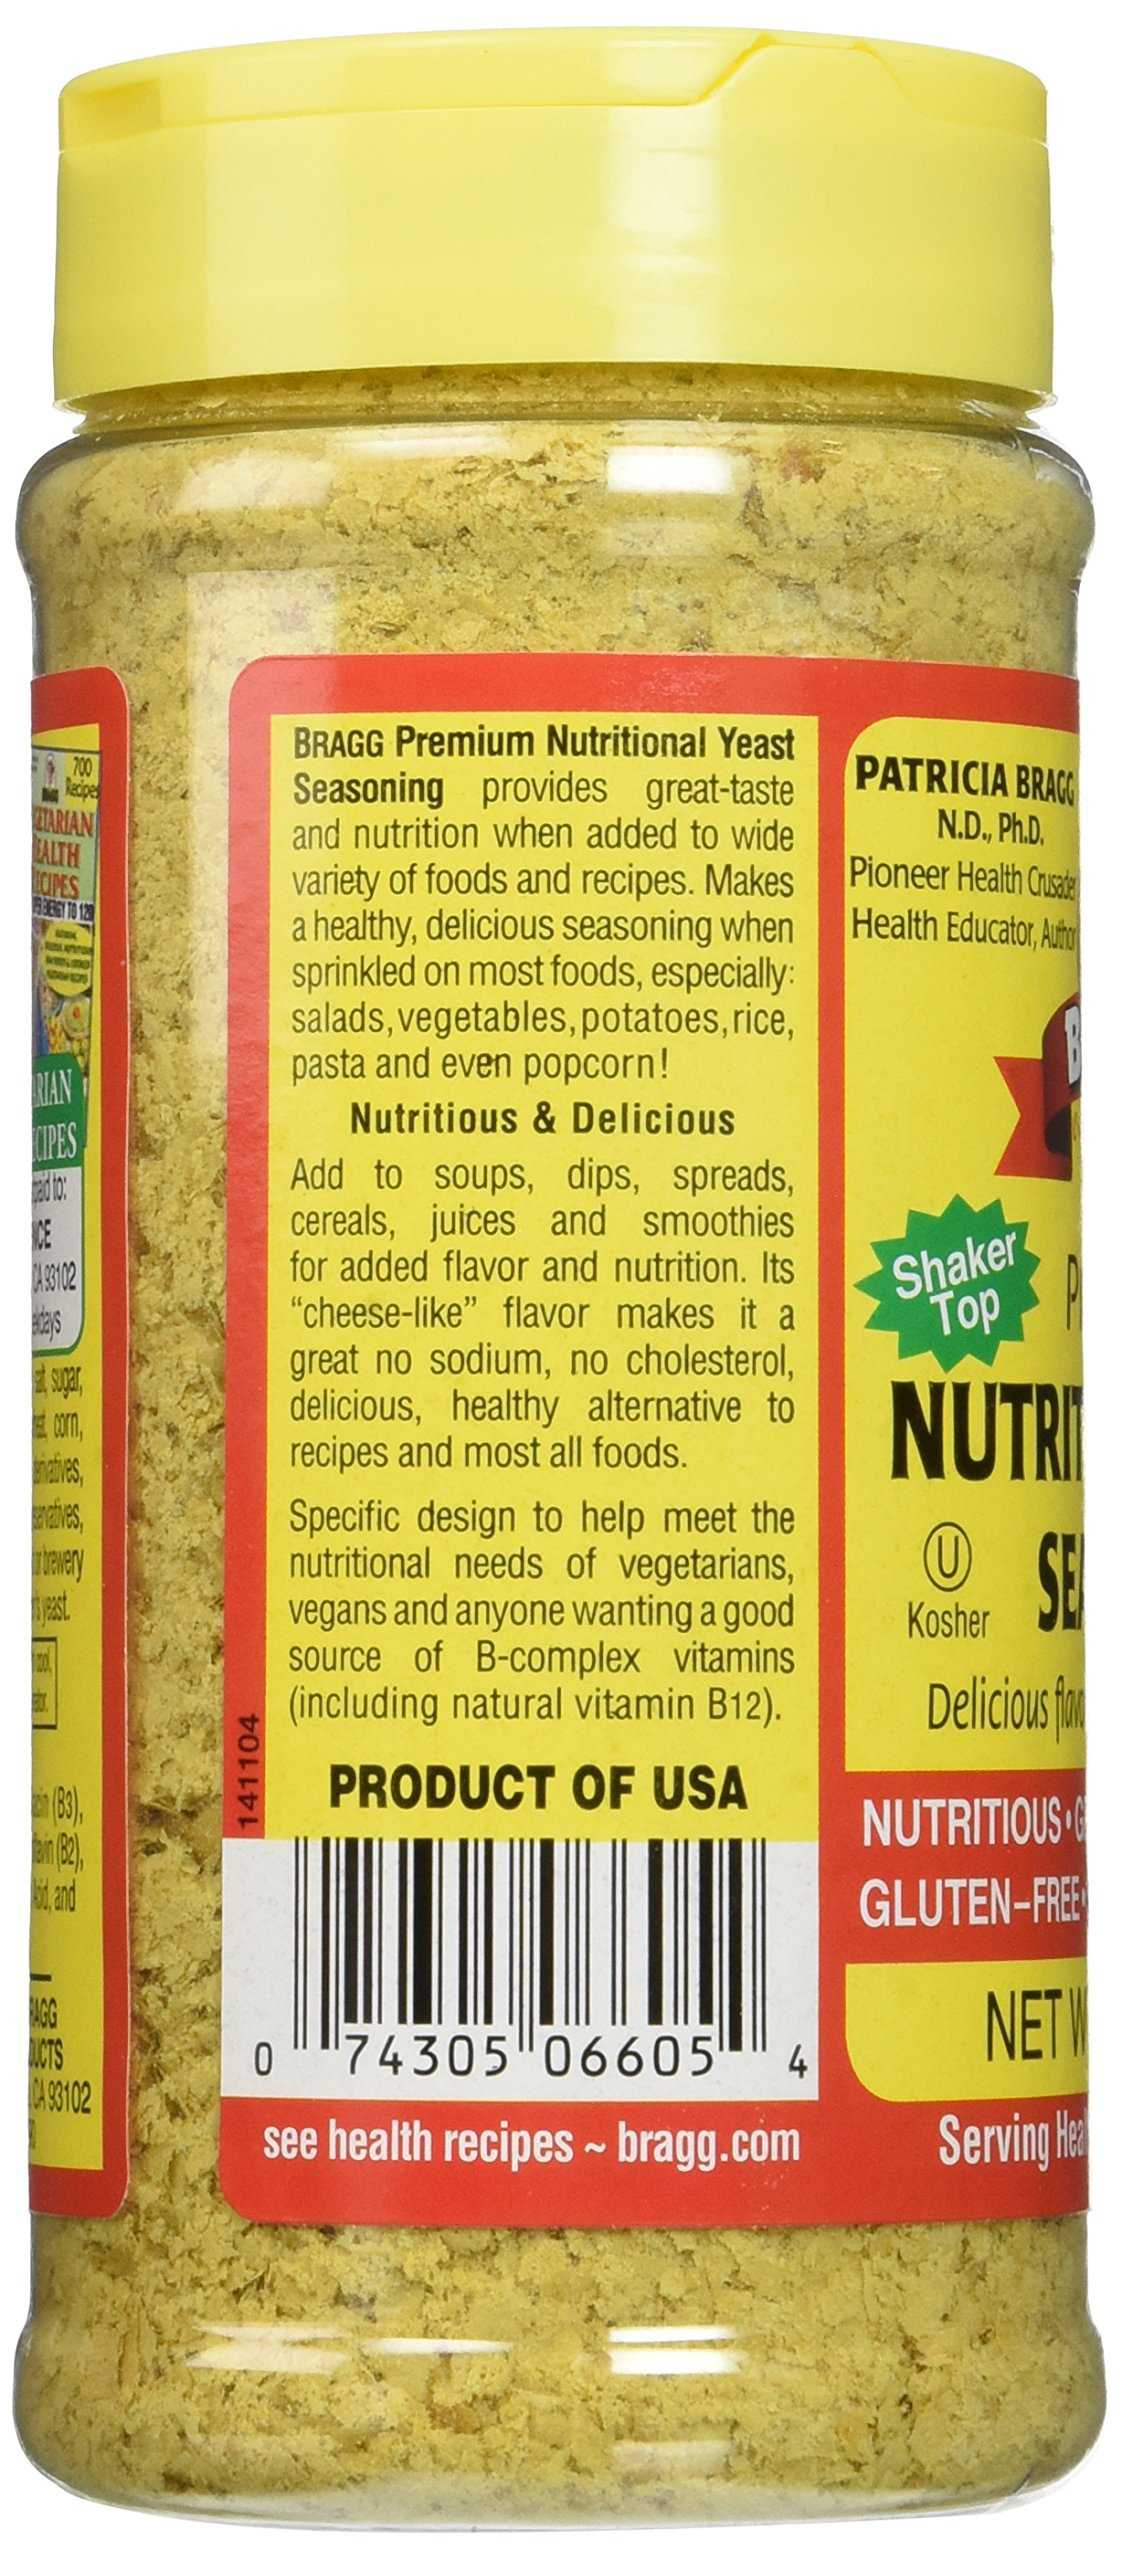 Bragg Nutritional Yeast Seasoning, Premium, 4.5 Ounce (2 Count) by Bragg (Image #6)